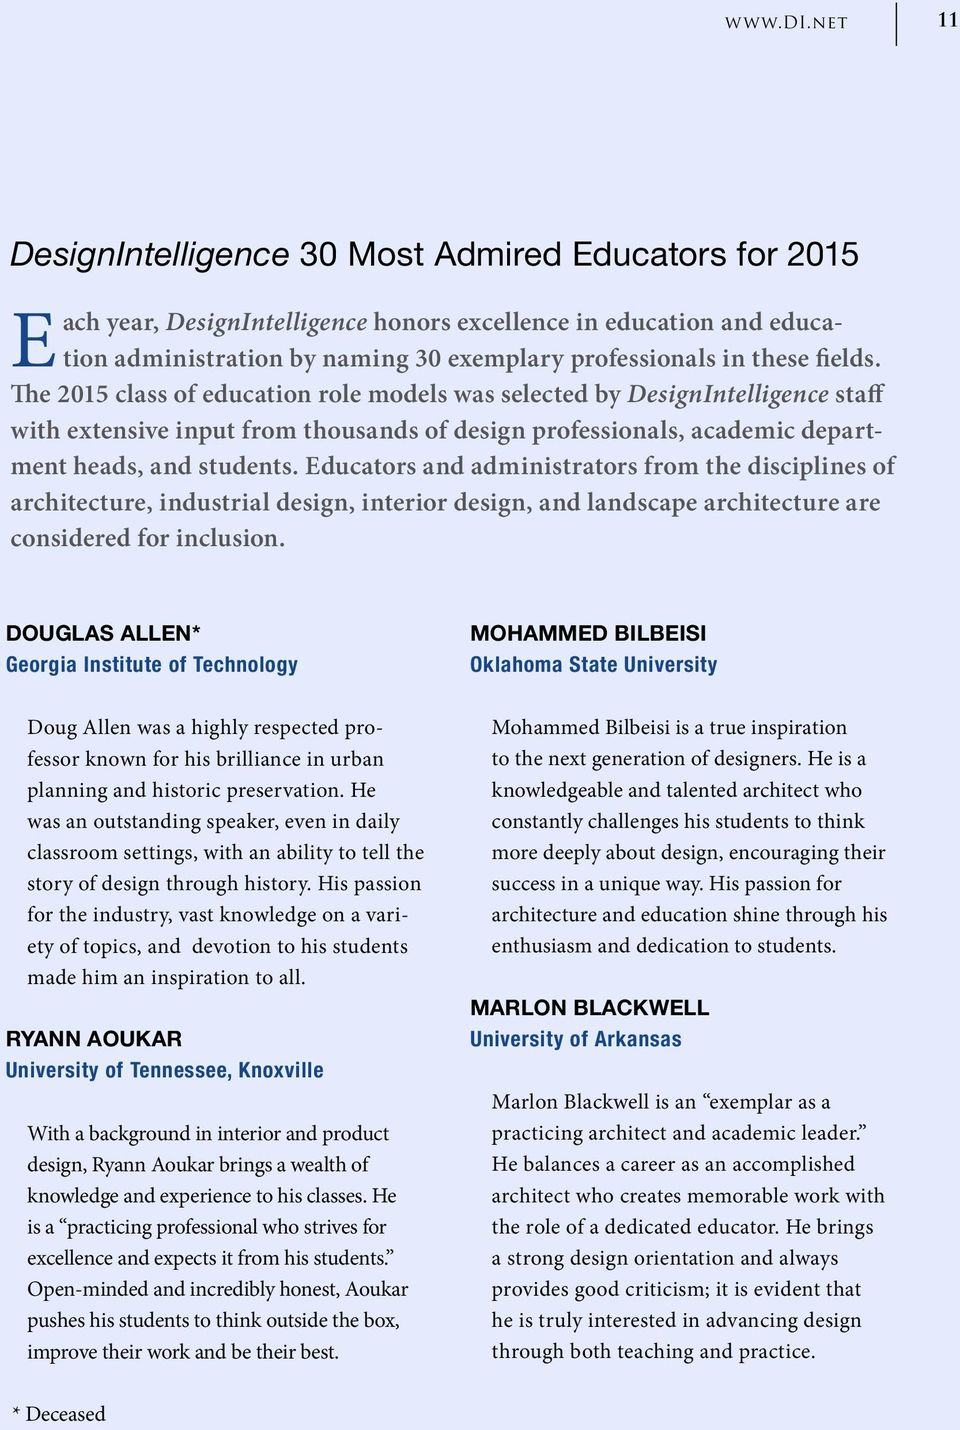 fields. The 2015 class of education role models was selected by DesignIntelligence staff with extensive input from thousands of design professionals, academic department heads, and students.